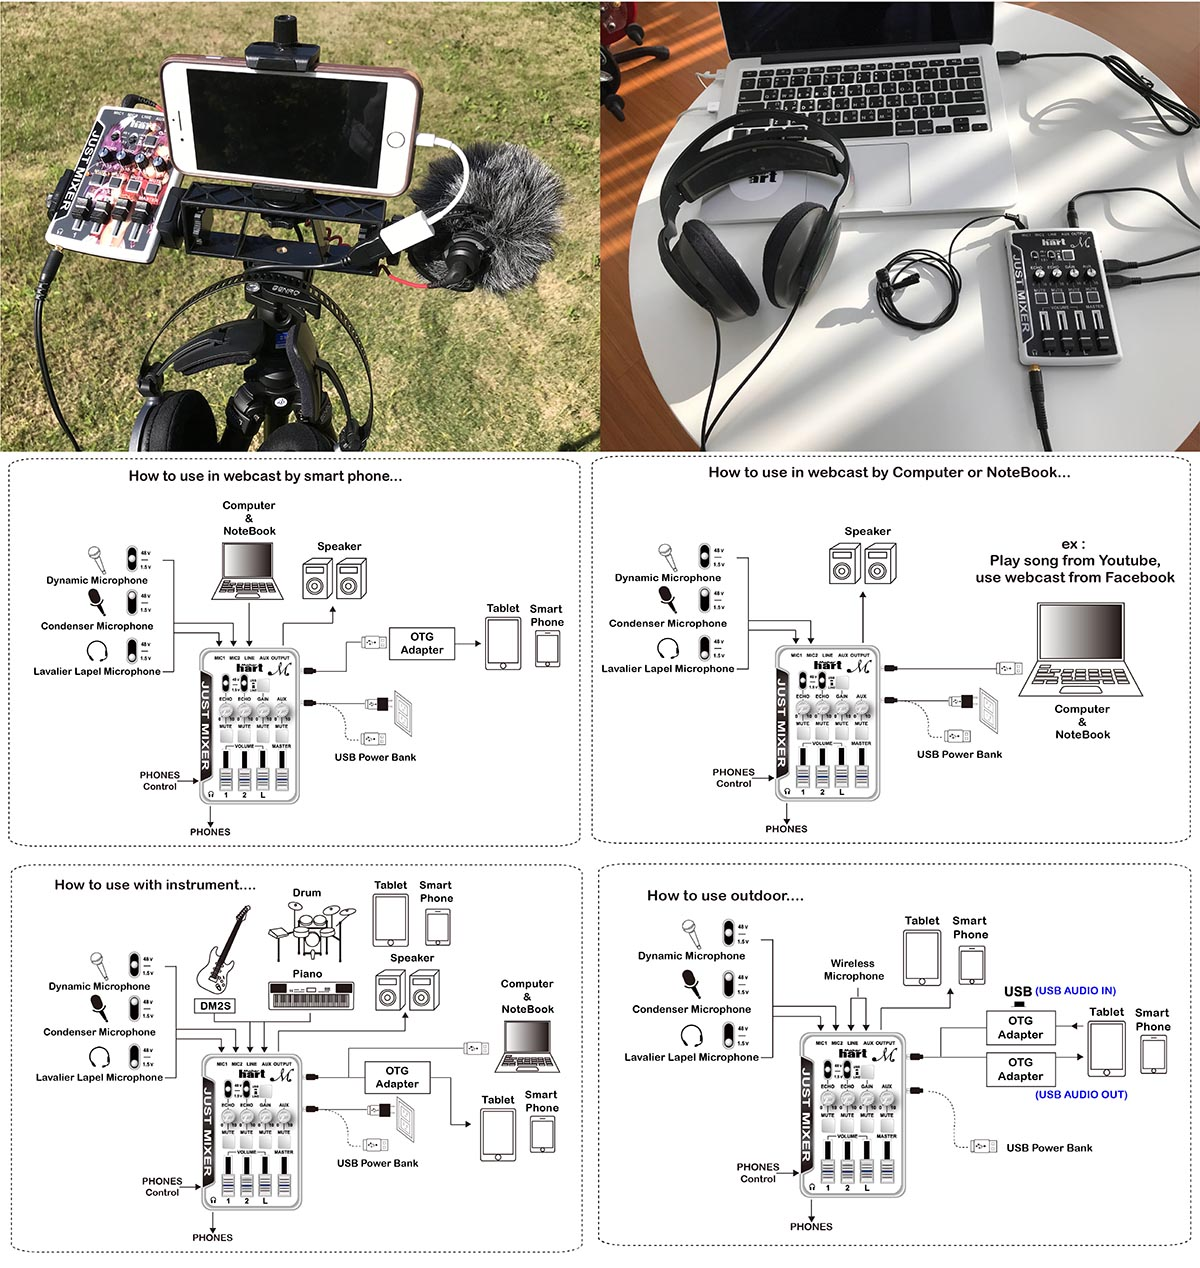 Just Mixer M Appplication for computer / mobile device / notebook